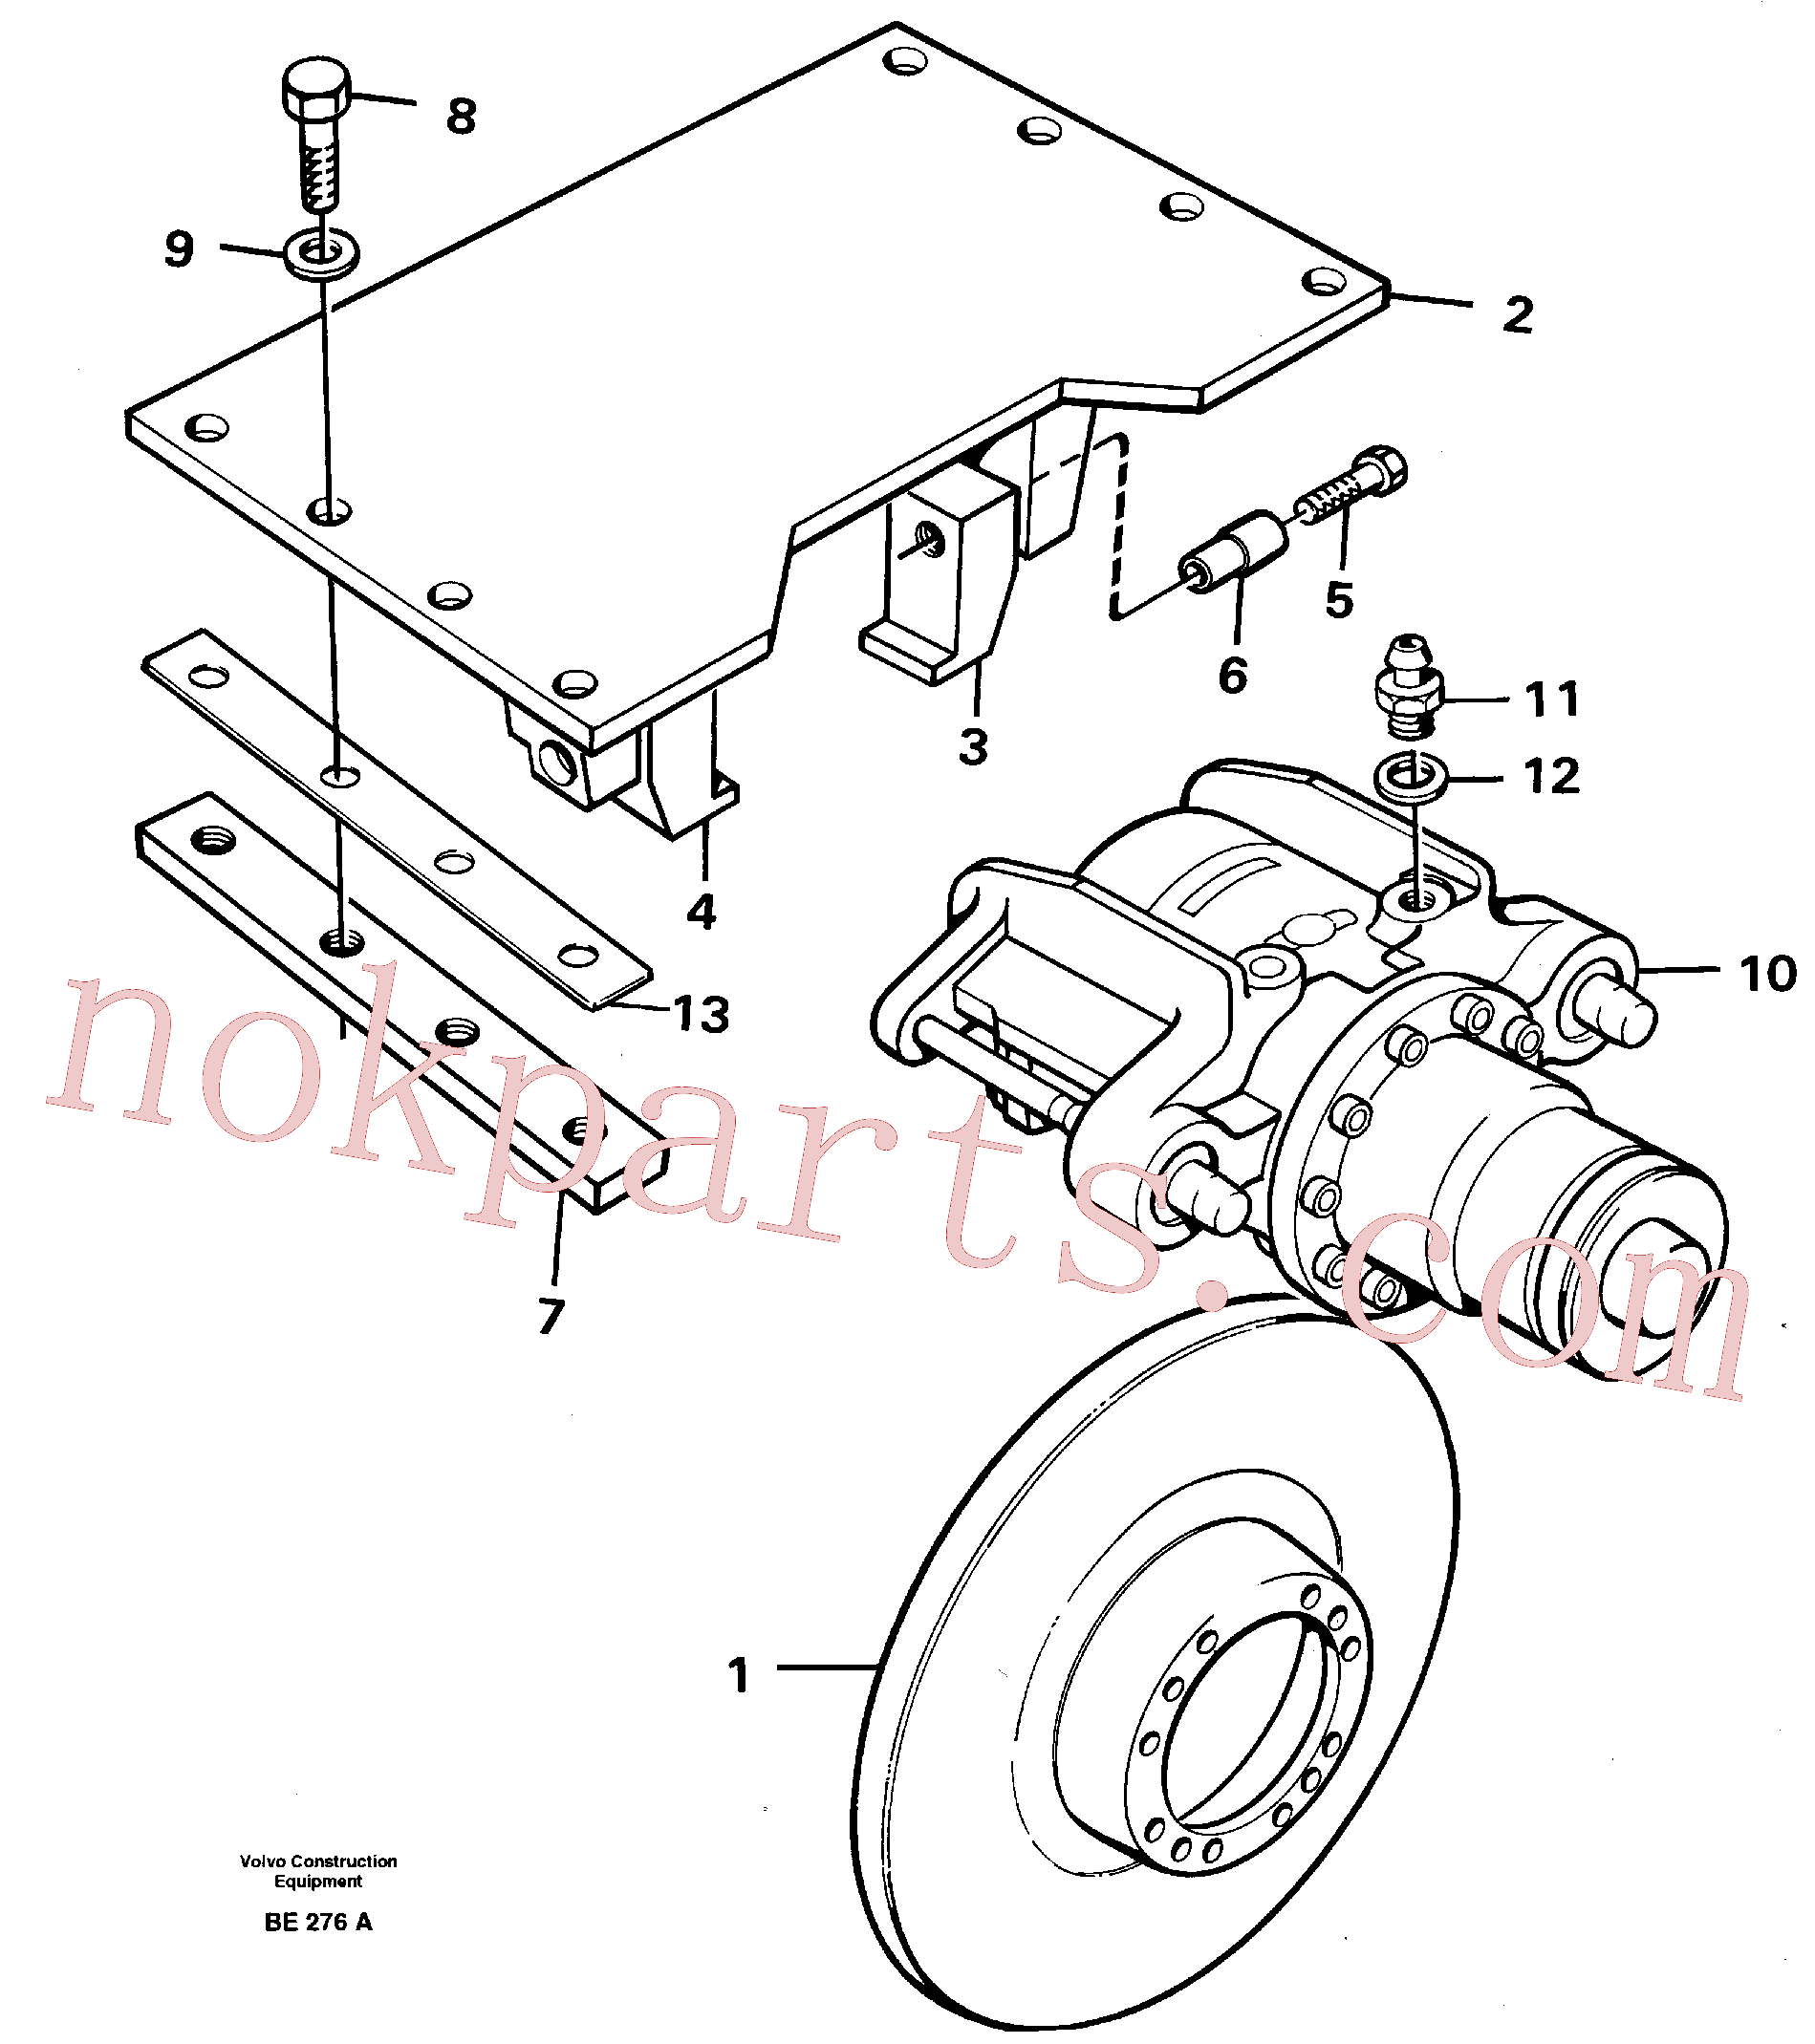 VOE955370 for Volvo Parking brake(BE276A assembly)